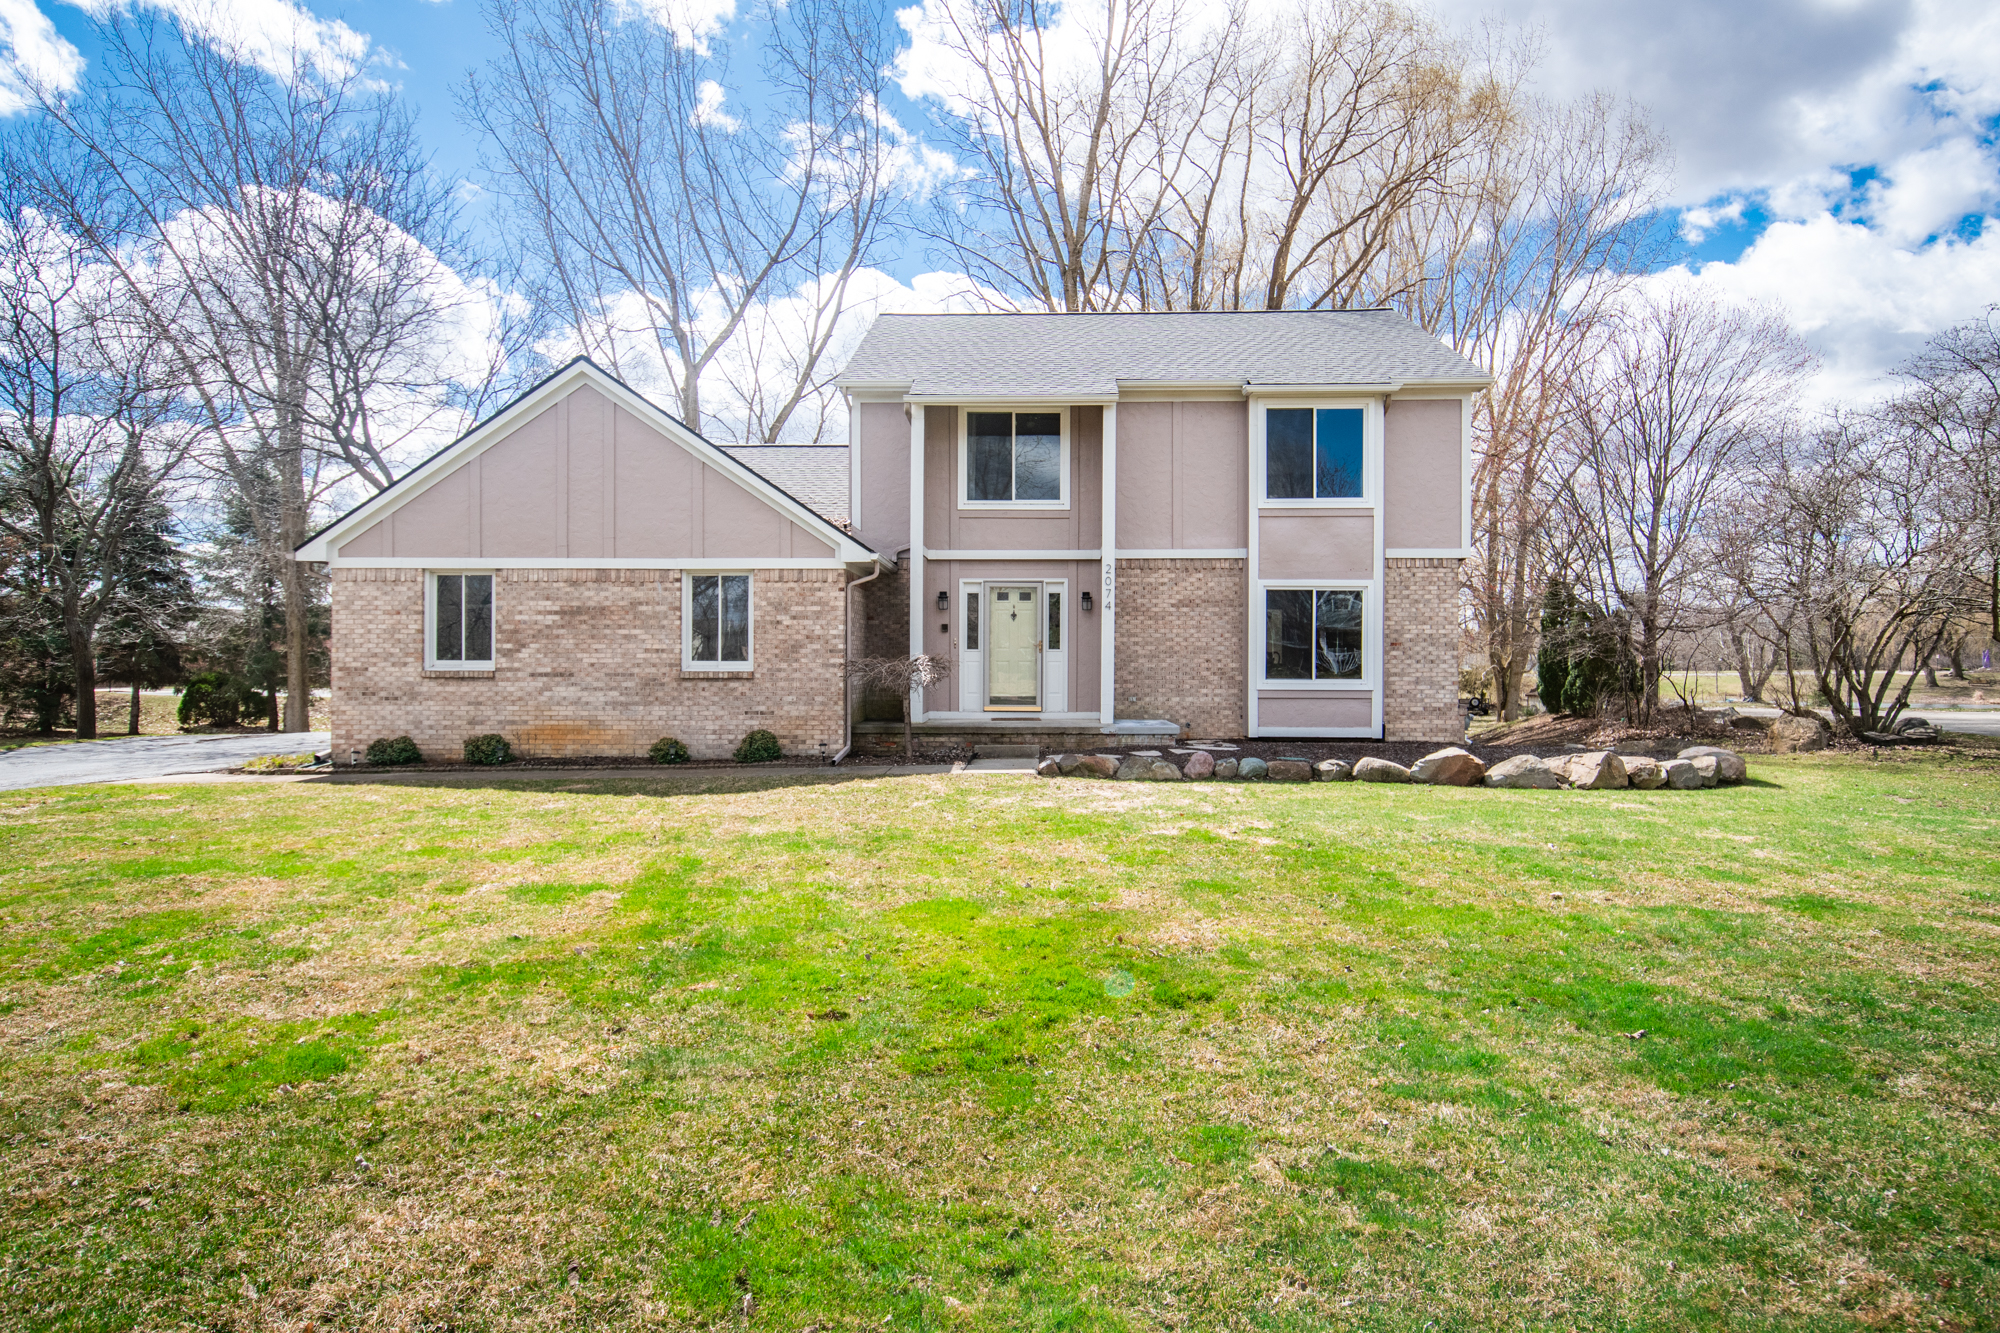 Cumberland Dr, Brighton - $345,000   DOM 5 / Sold for over asking price / 16 Showings